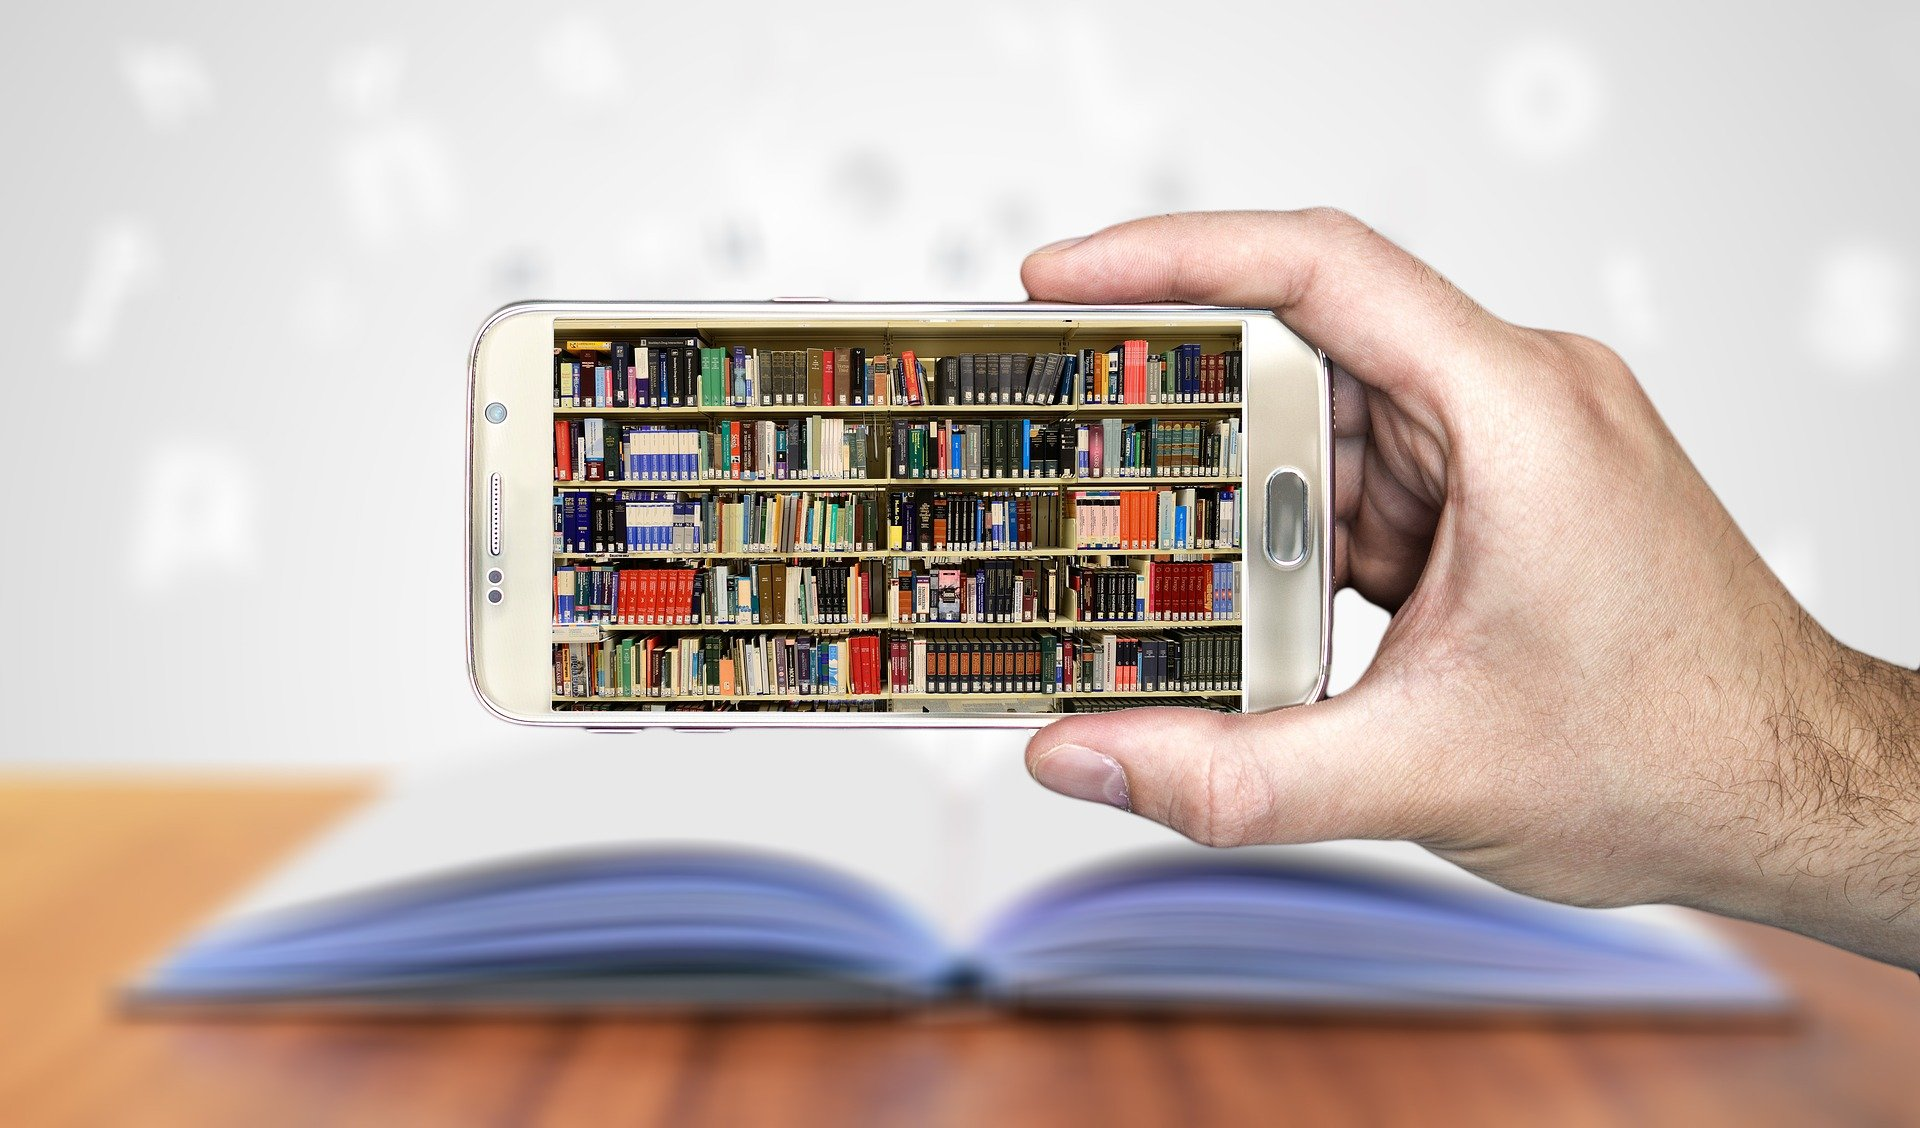 The image shows a hand holding up a smartphone with a photograph of library bookshelves on the screen. In the background, out of focus, is a desk with an open book on it.